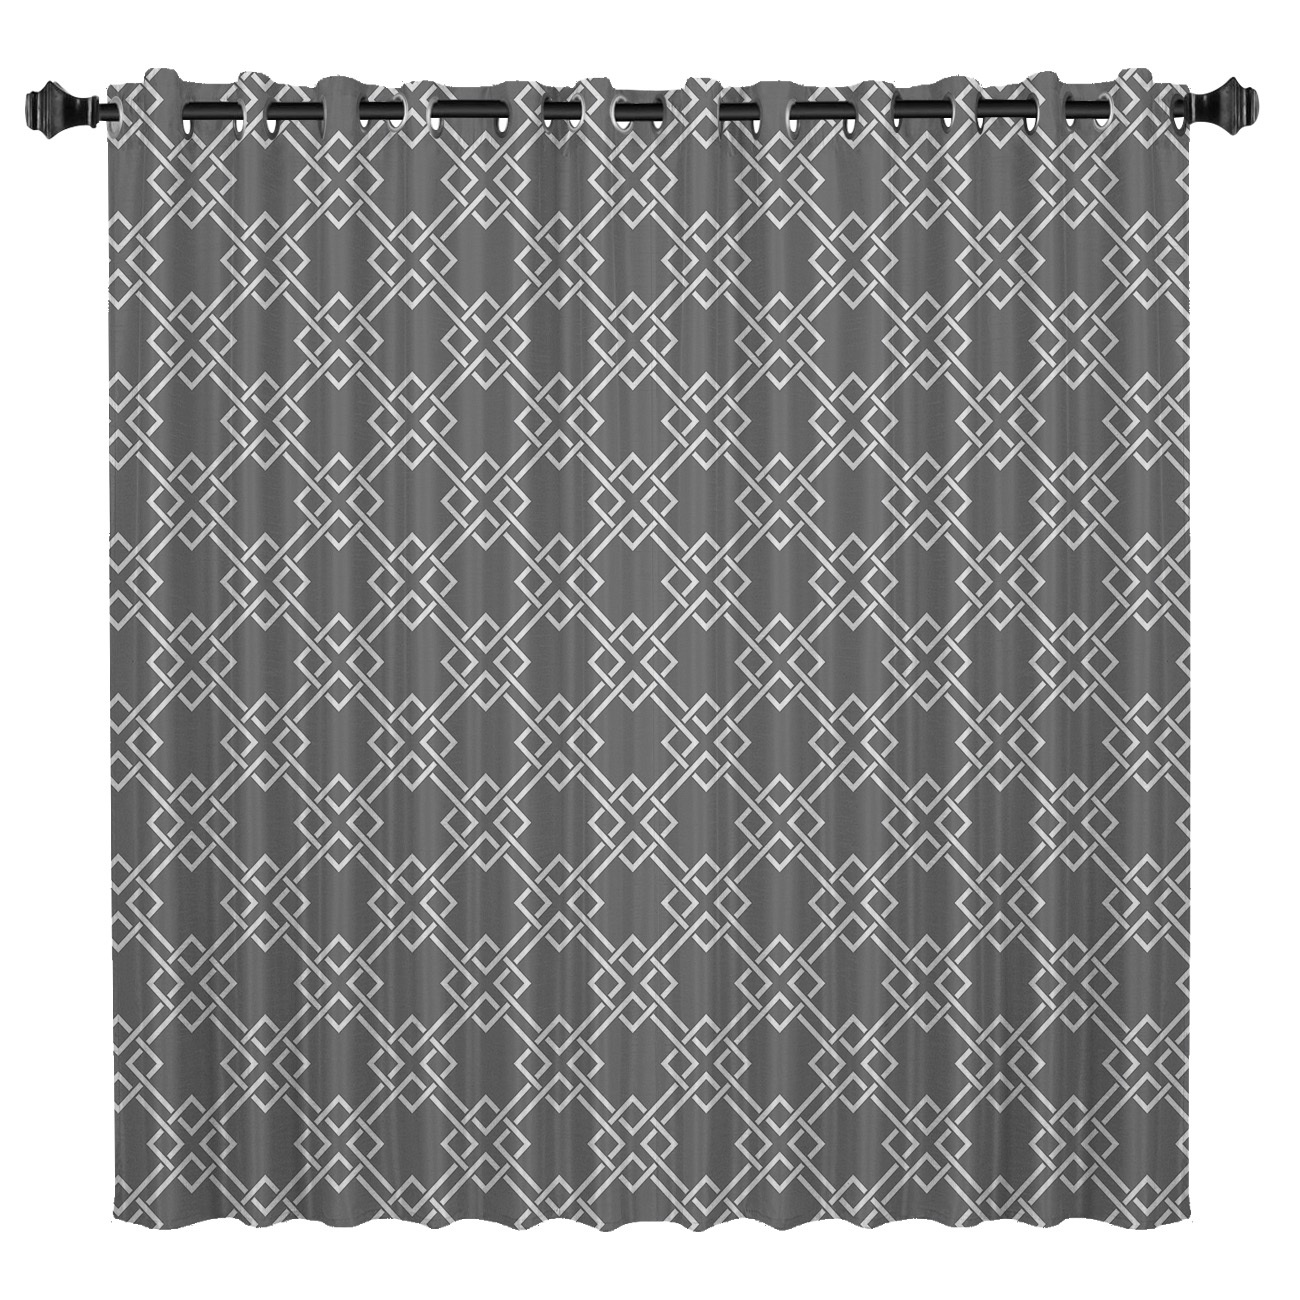 Modern Geometric Mesh Window Curtains Dark Bathroom Outdoor Kitchen Floral Drapes Decor Curtain Panels With Grommets Party Decor